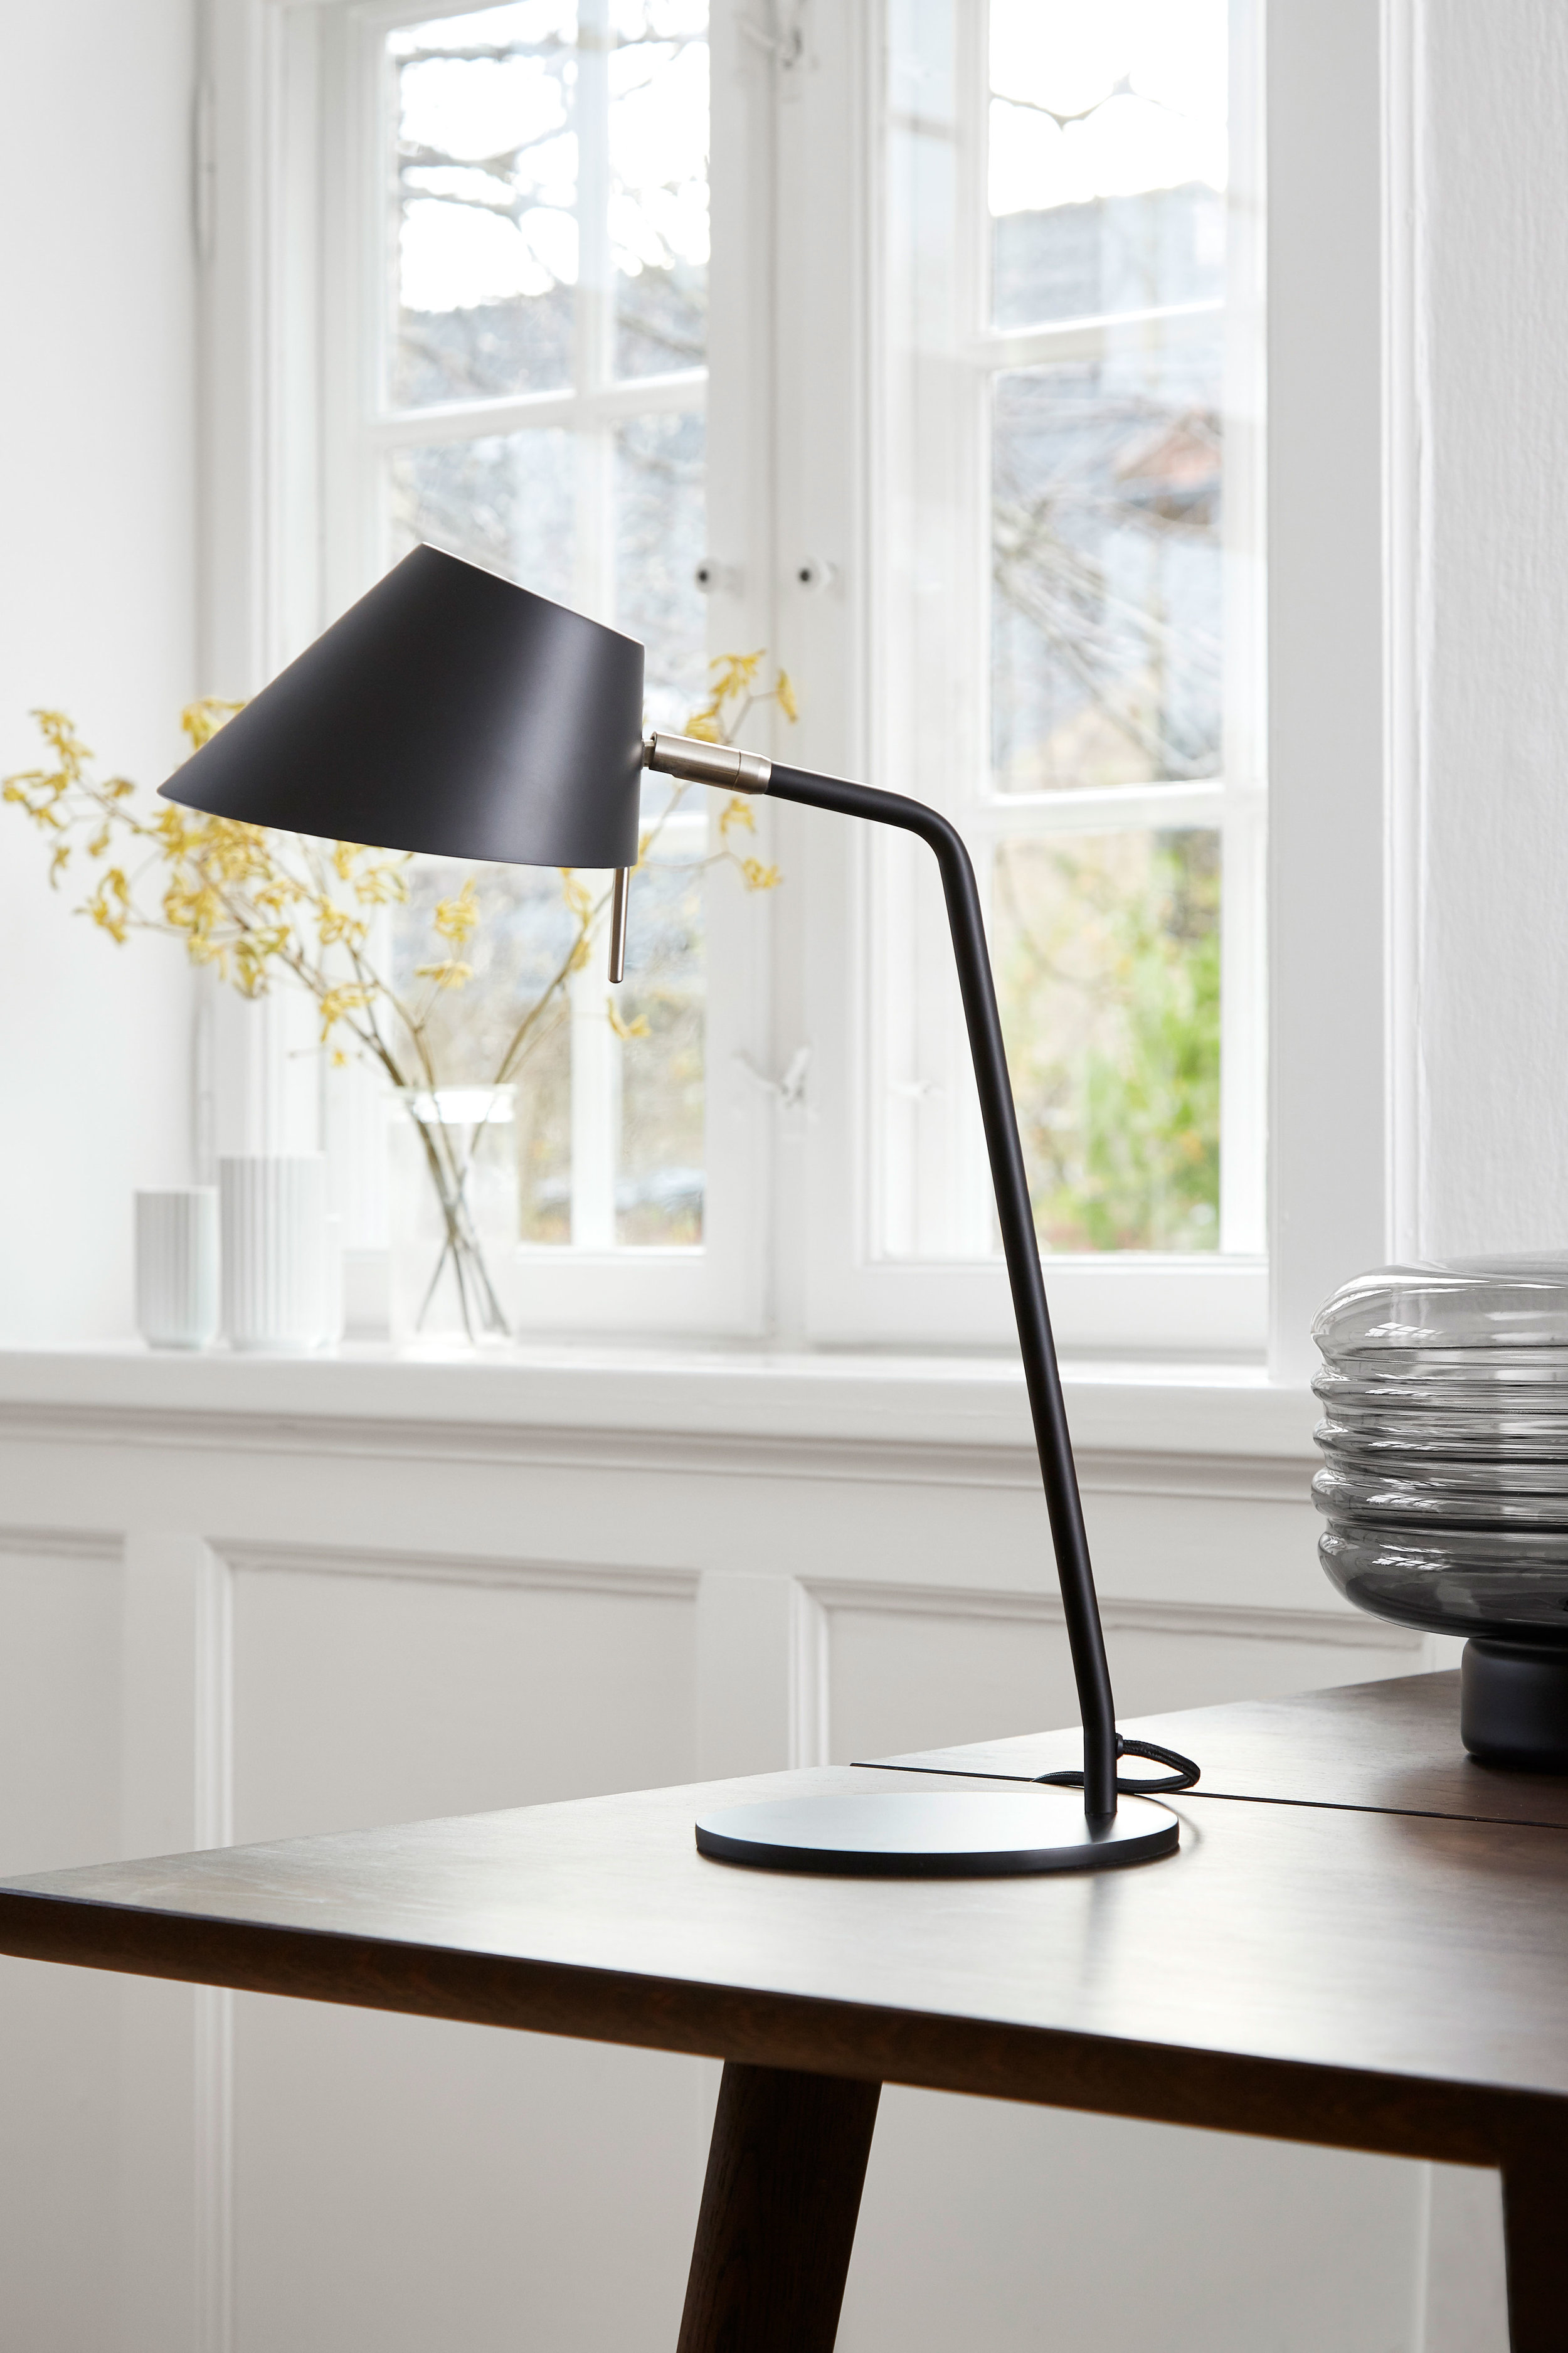 """""""The Office lamp series from Frandsen Retail meets all the requirements for good work lighting, while setting a homelike tone with its elegant design details.""""   READ"""